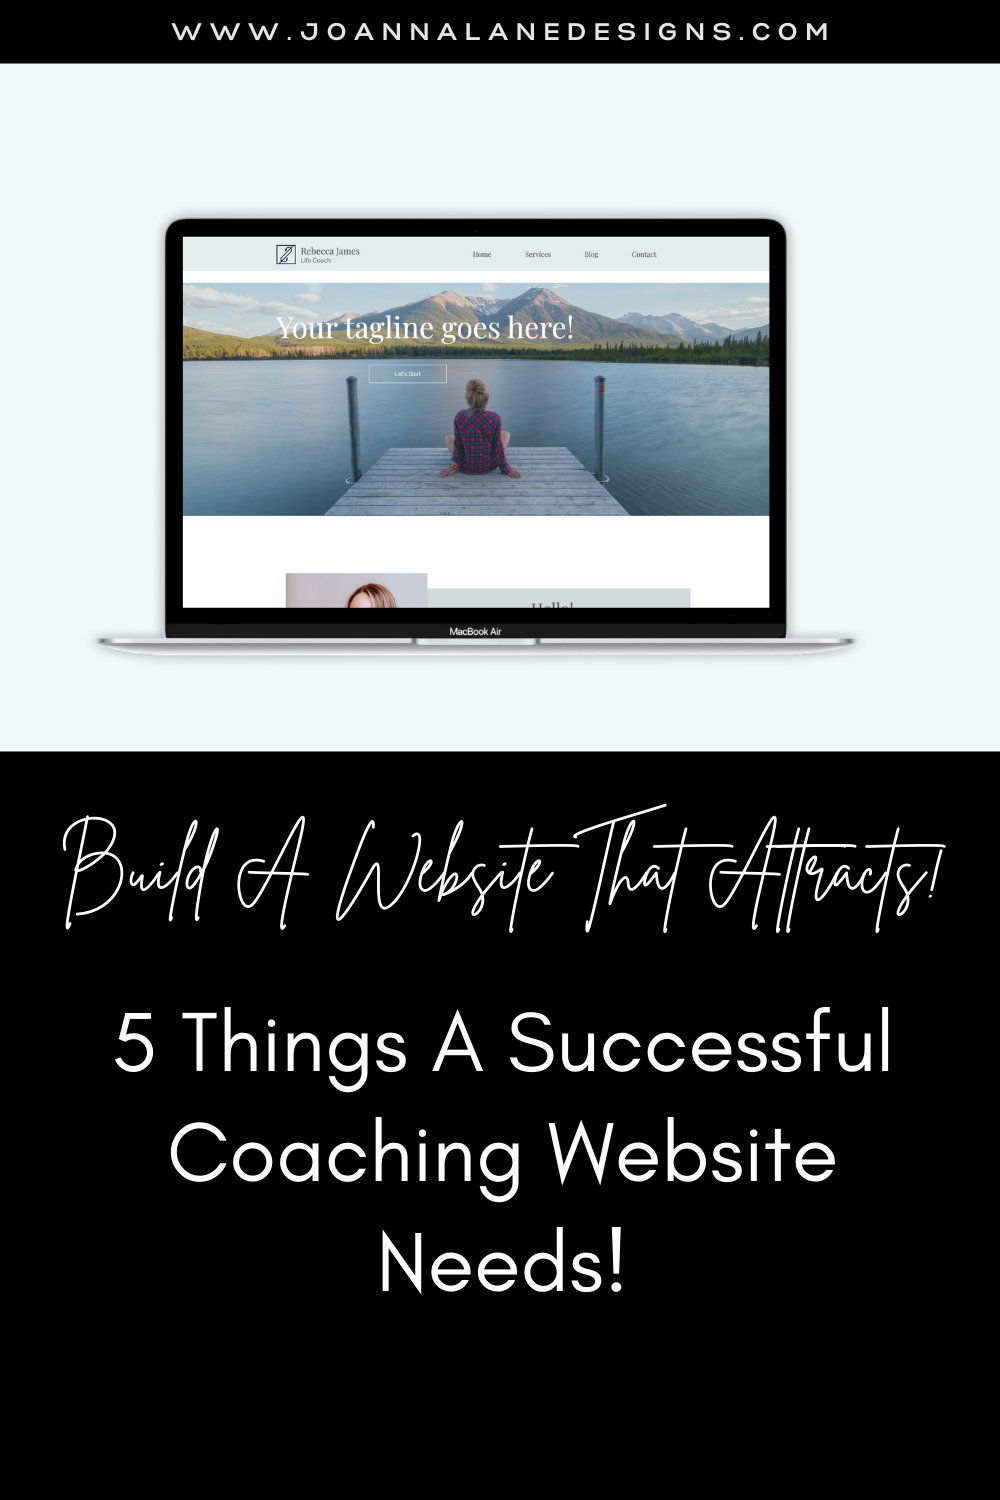 5 things a successful coaching website needs